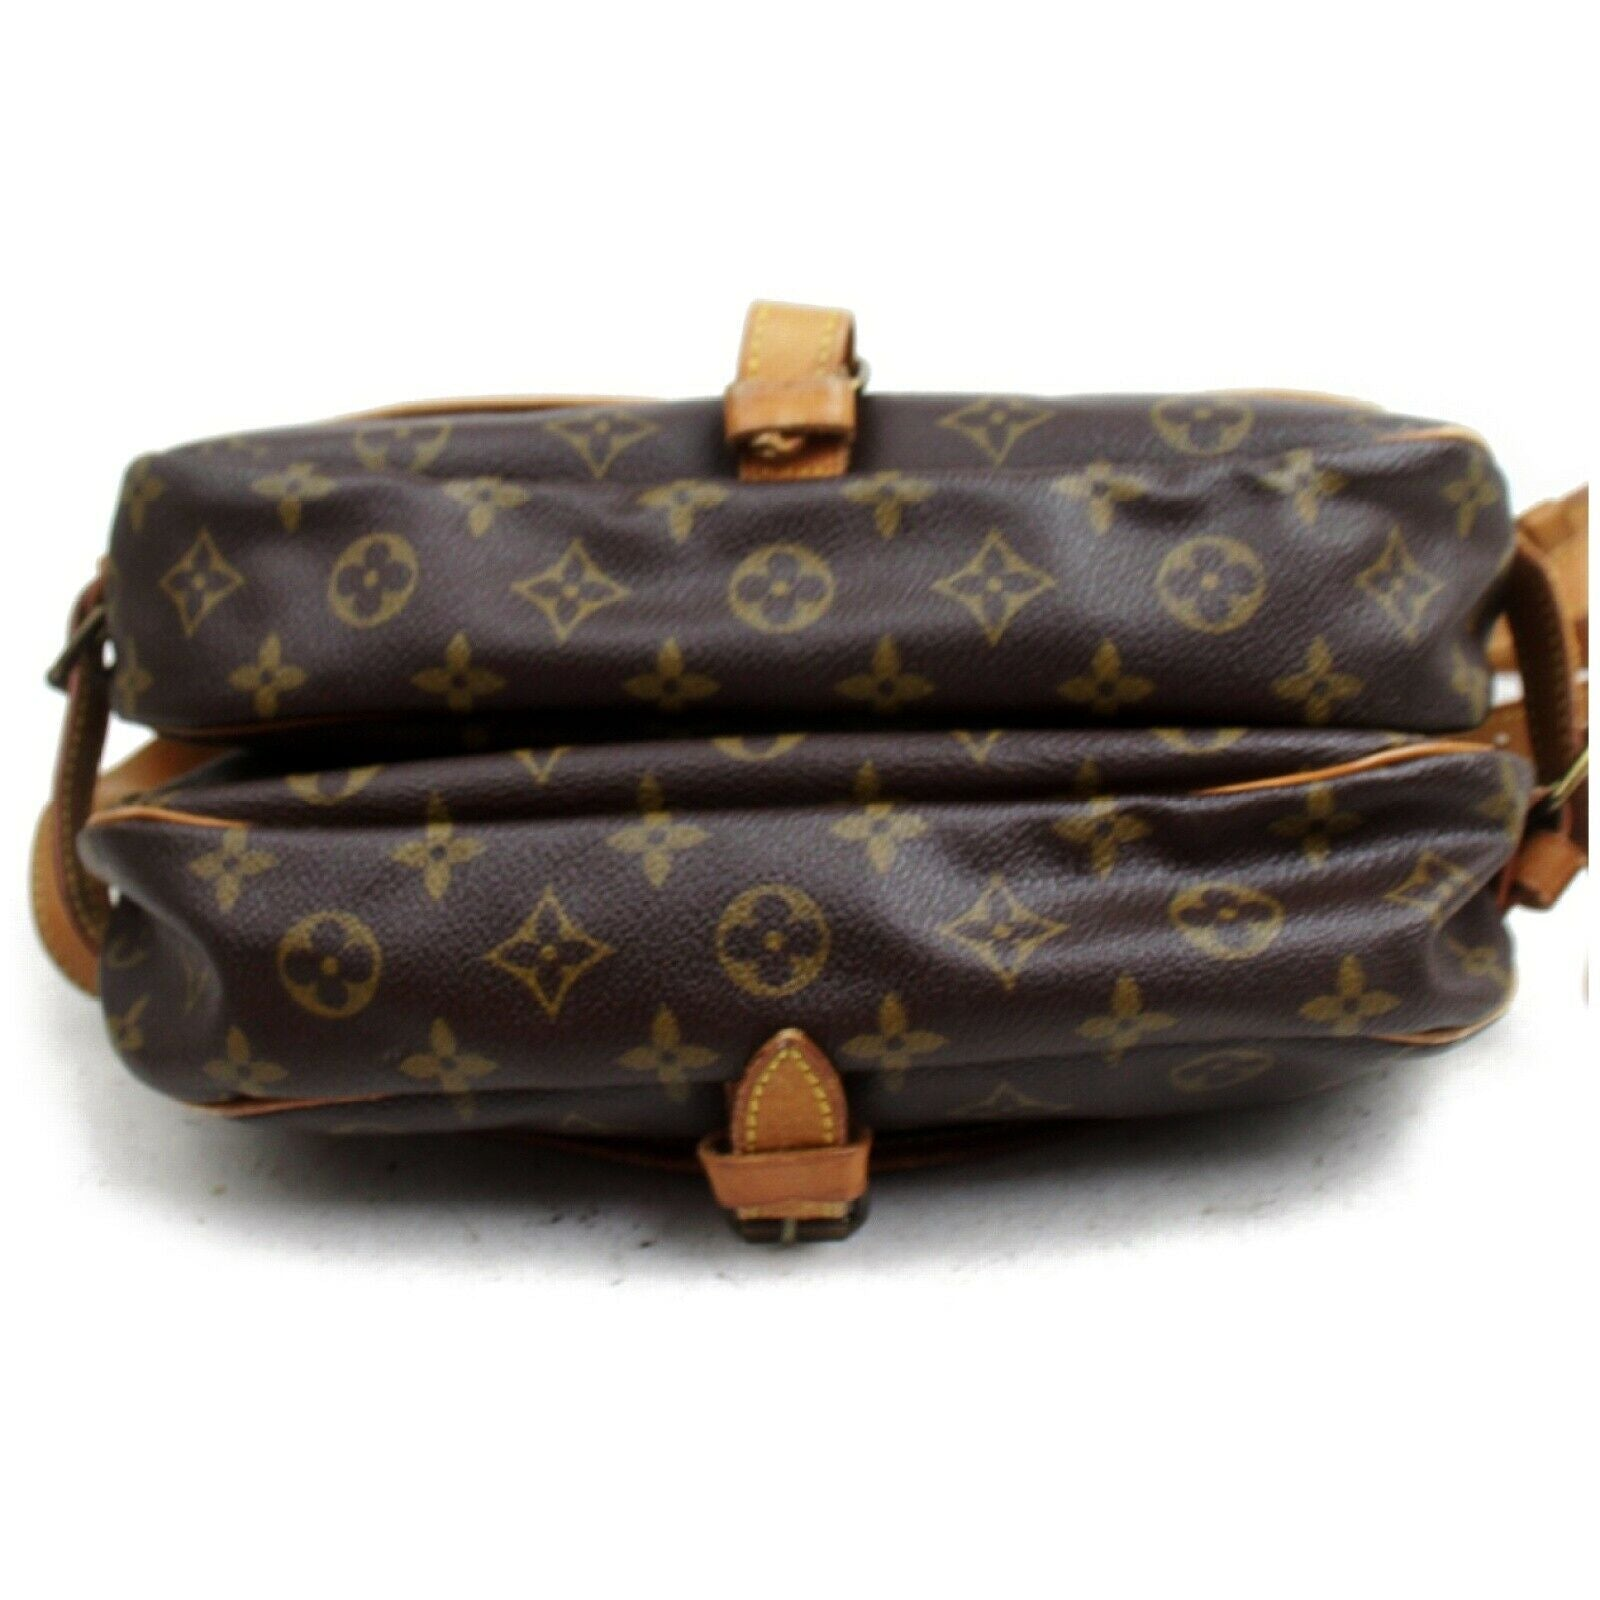 Louis Vuitton Saumur 30 M42256 Brown Monogram Shoulder Bag 11442